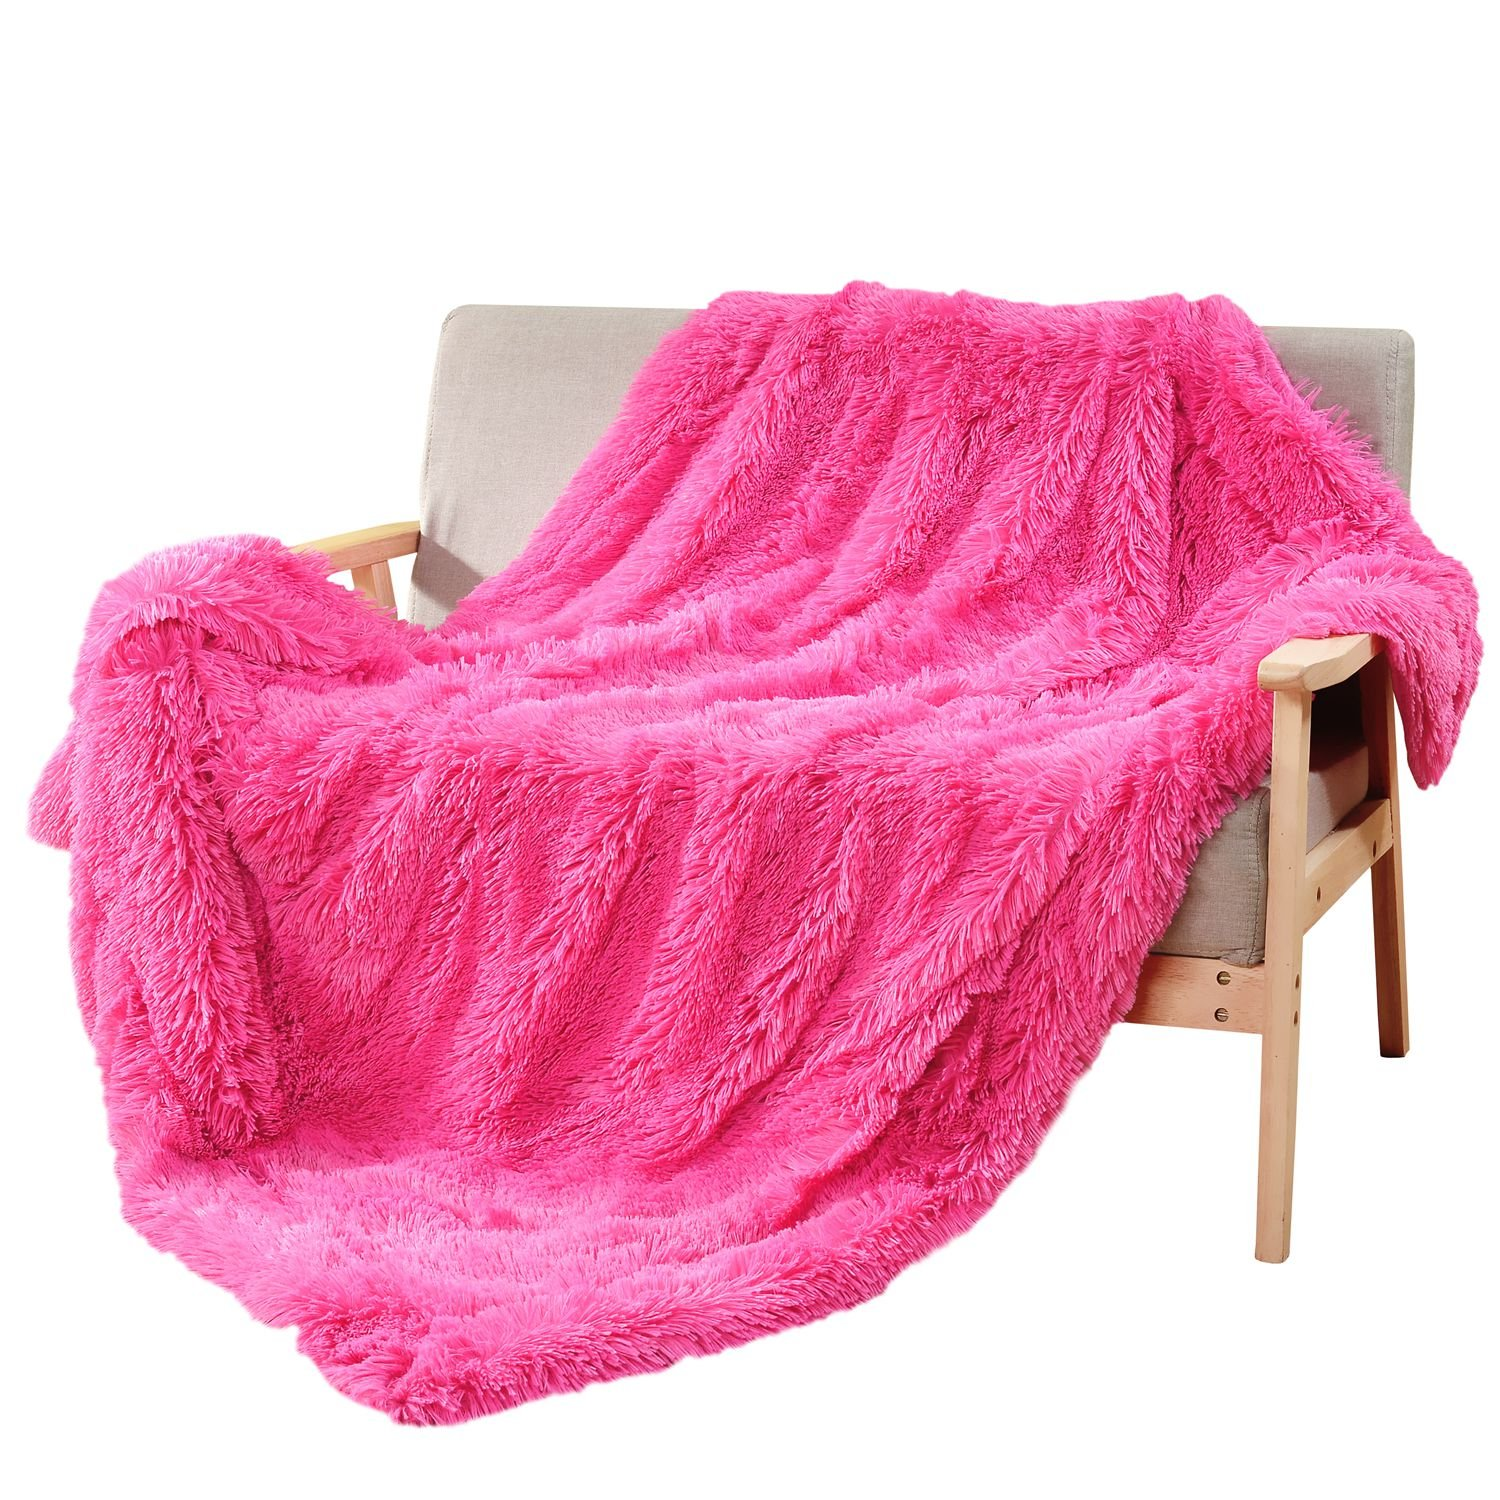 DECOSY Super Soft Faux Fur Throw Blanket Hot Pink 50''x 60'' - Decorative Warm Cozy Reversible Fleece Flannel TV Blanket for Sofa Couch Chair Bed - All Season Quilt Comforter - Christmas Gift